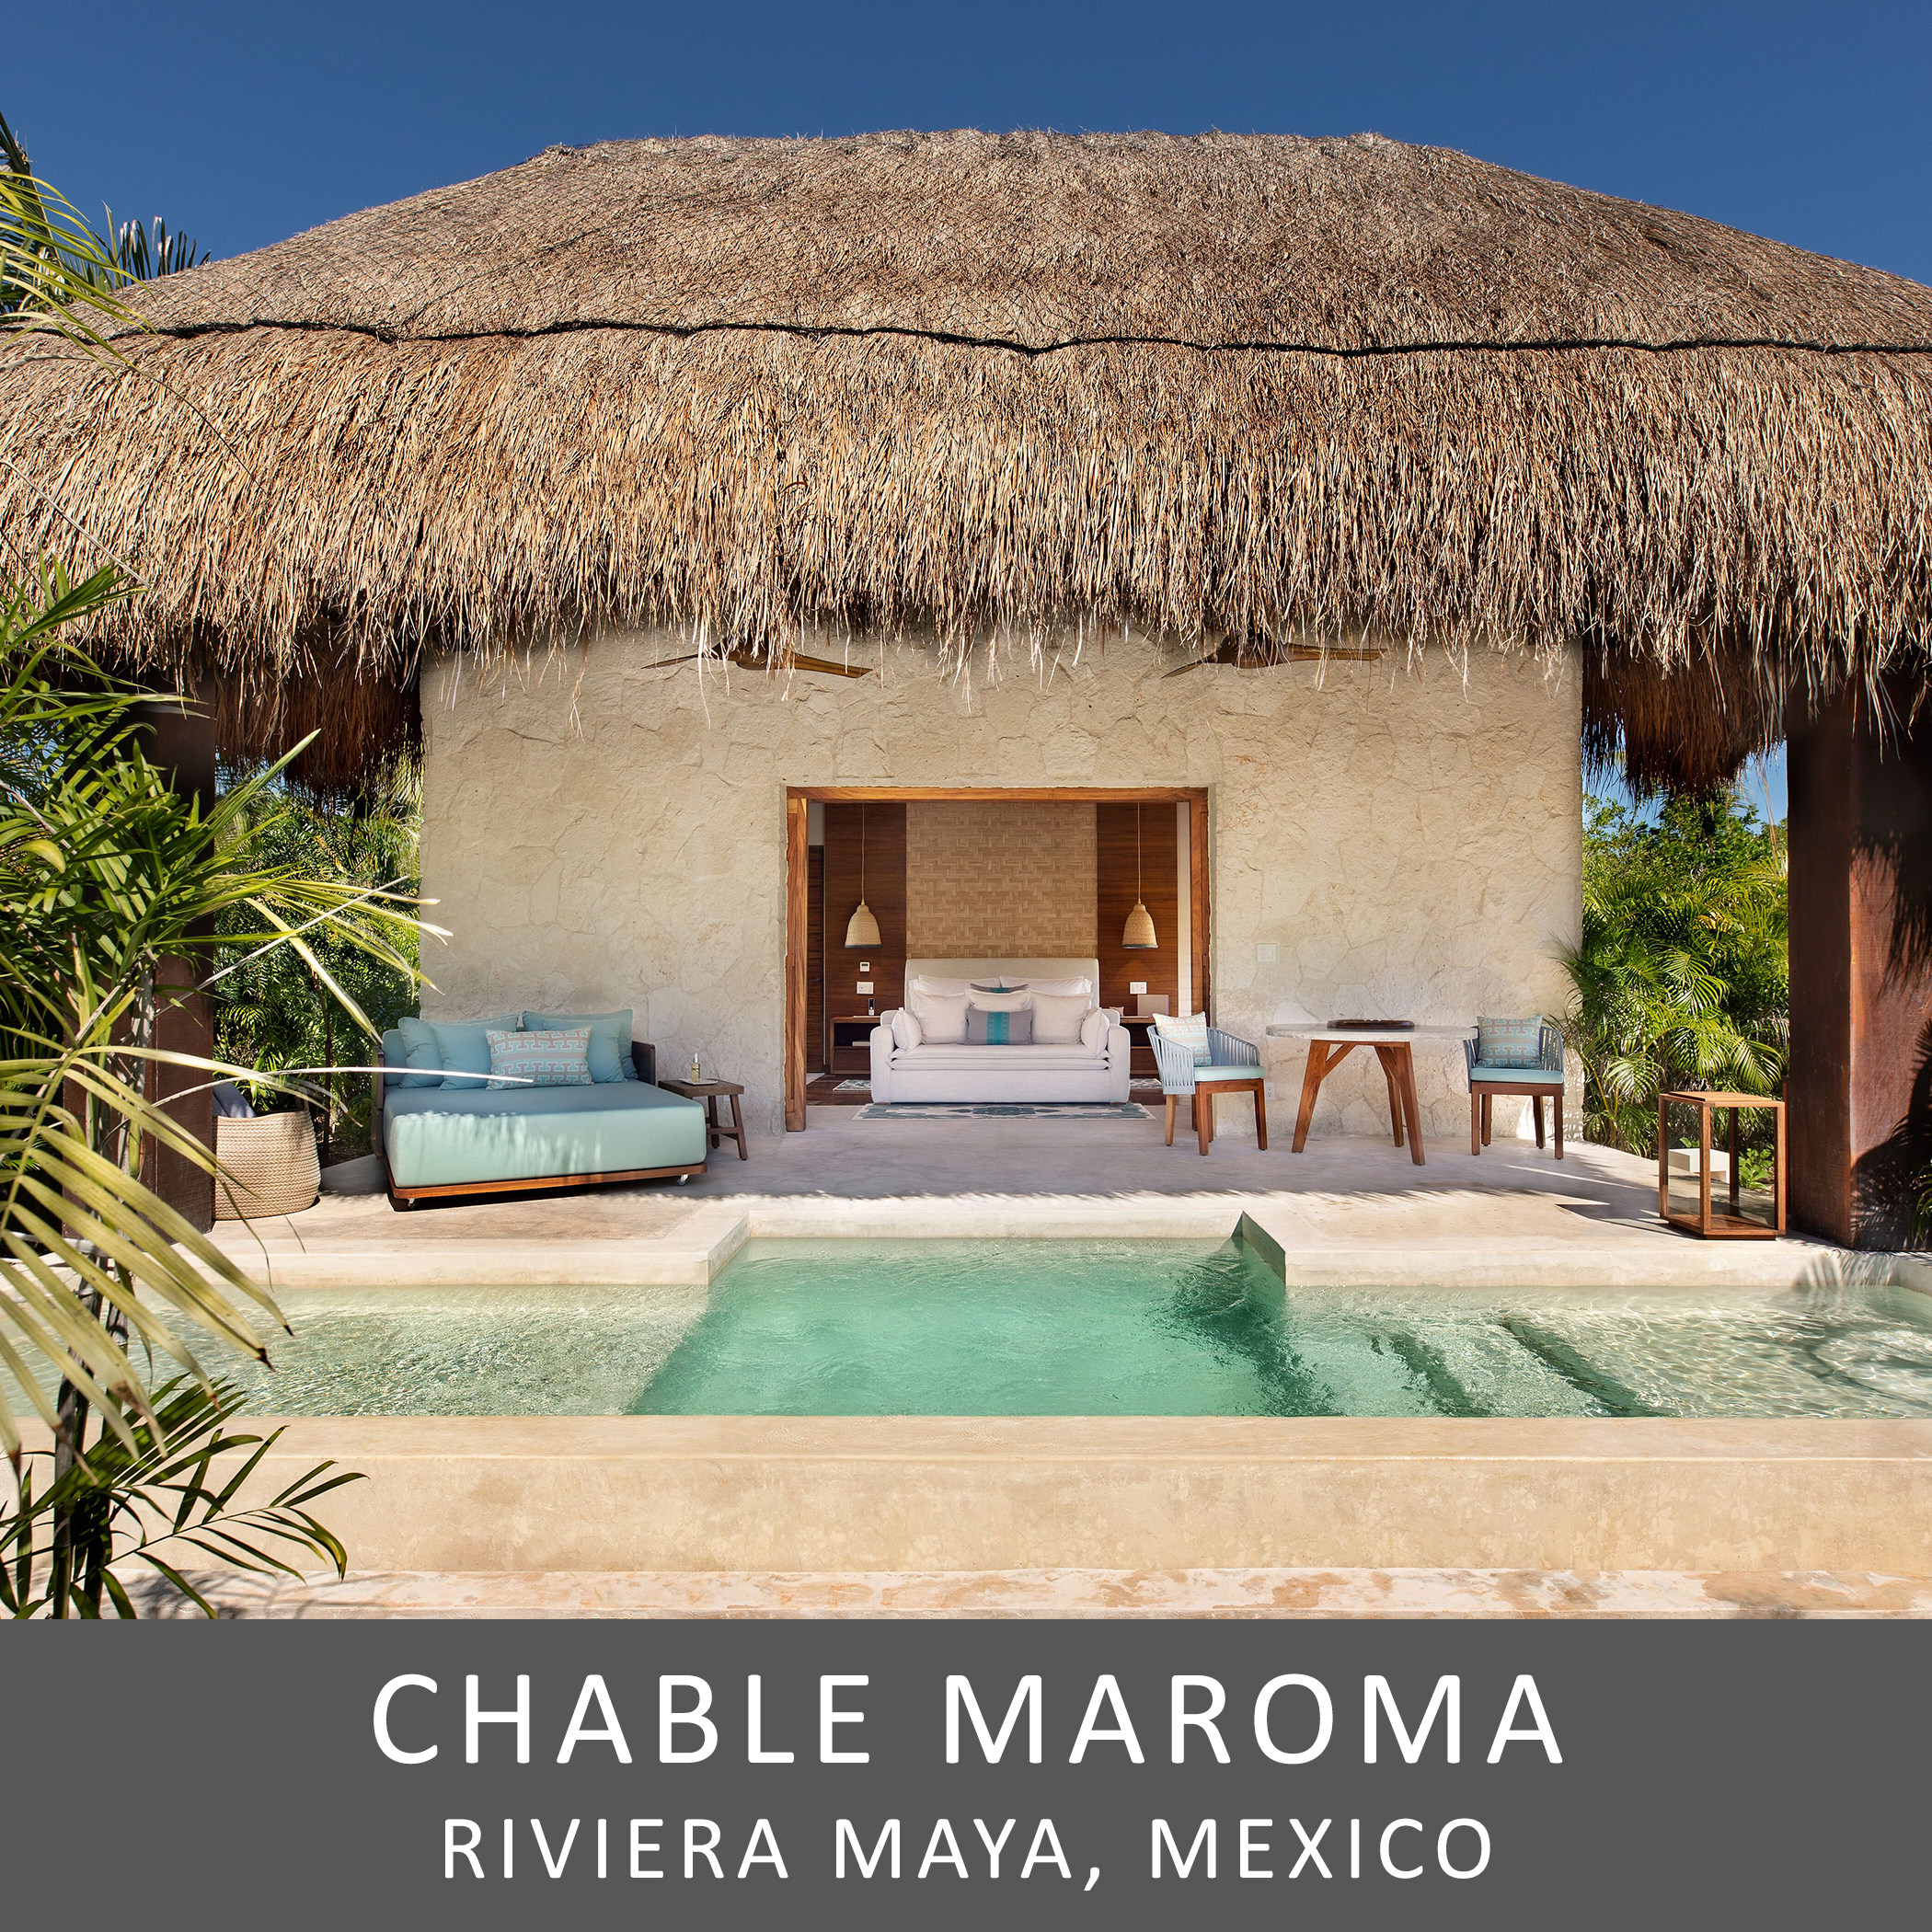 Chable Maroma